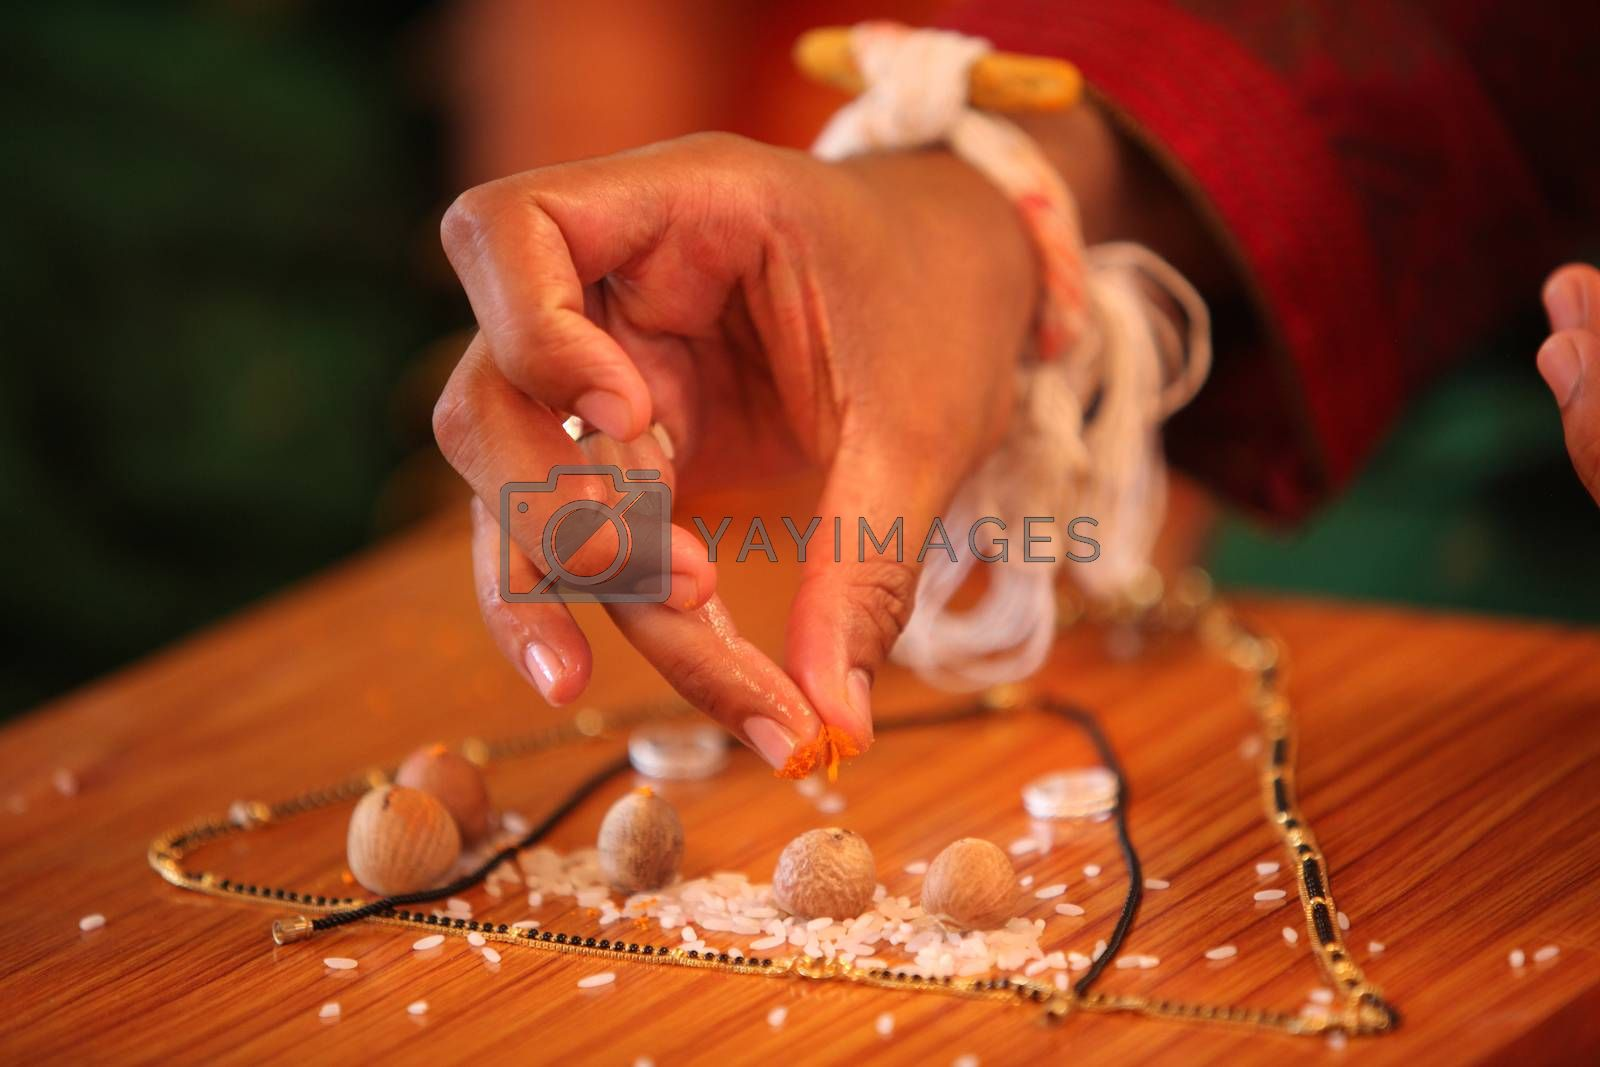 A groom performing a traditional ritual during a hindu wedding in India